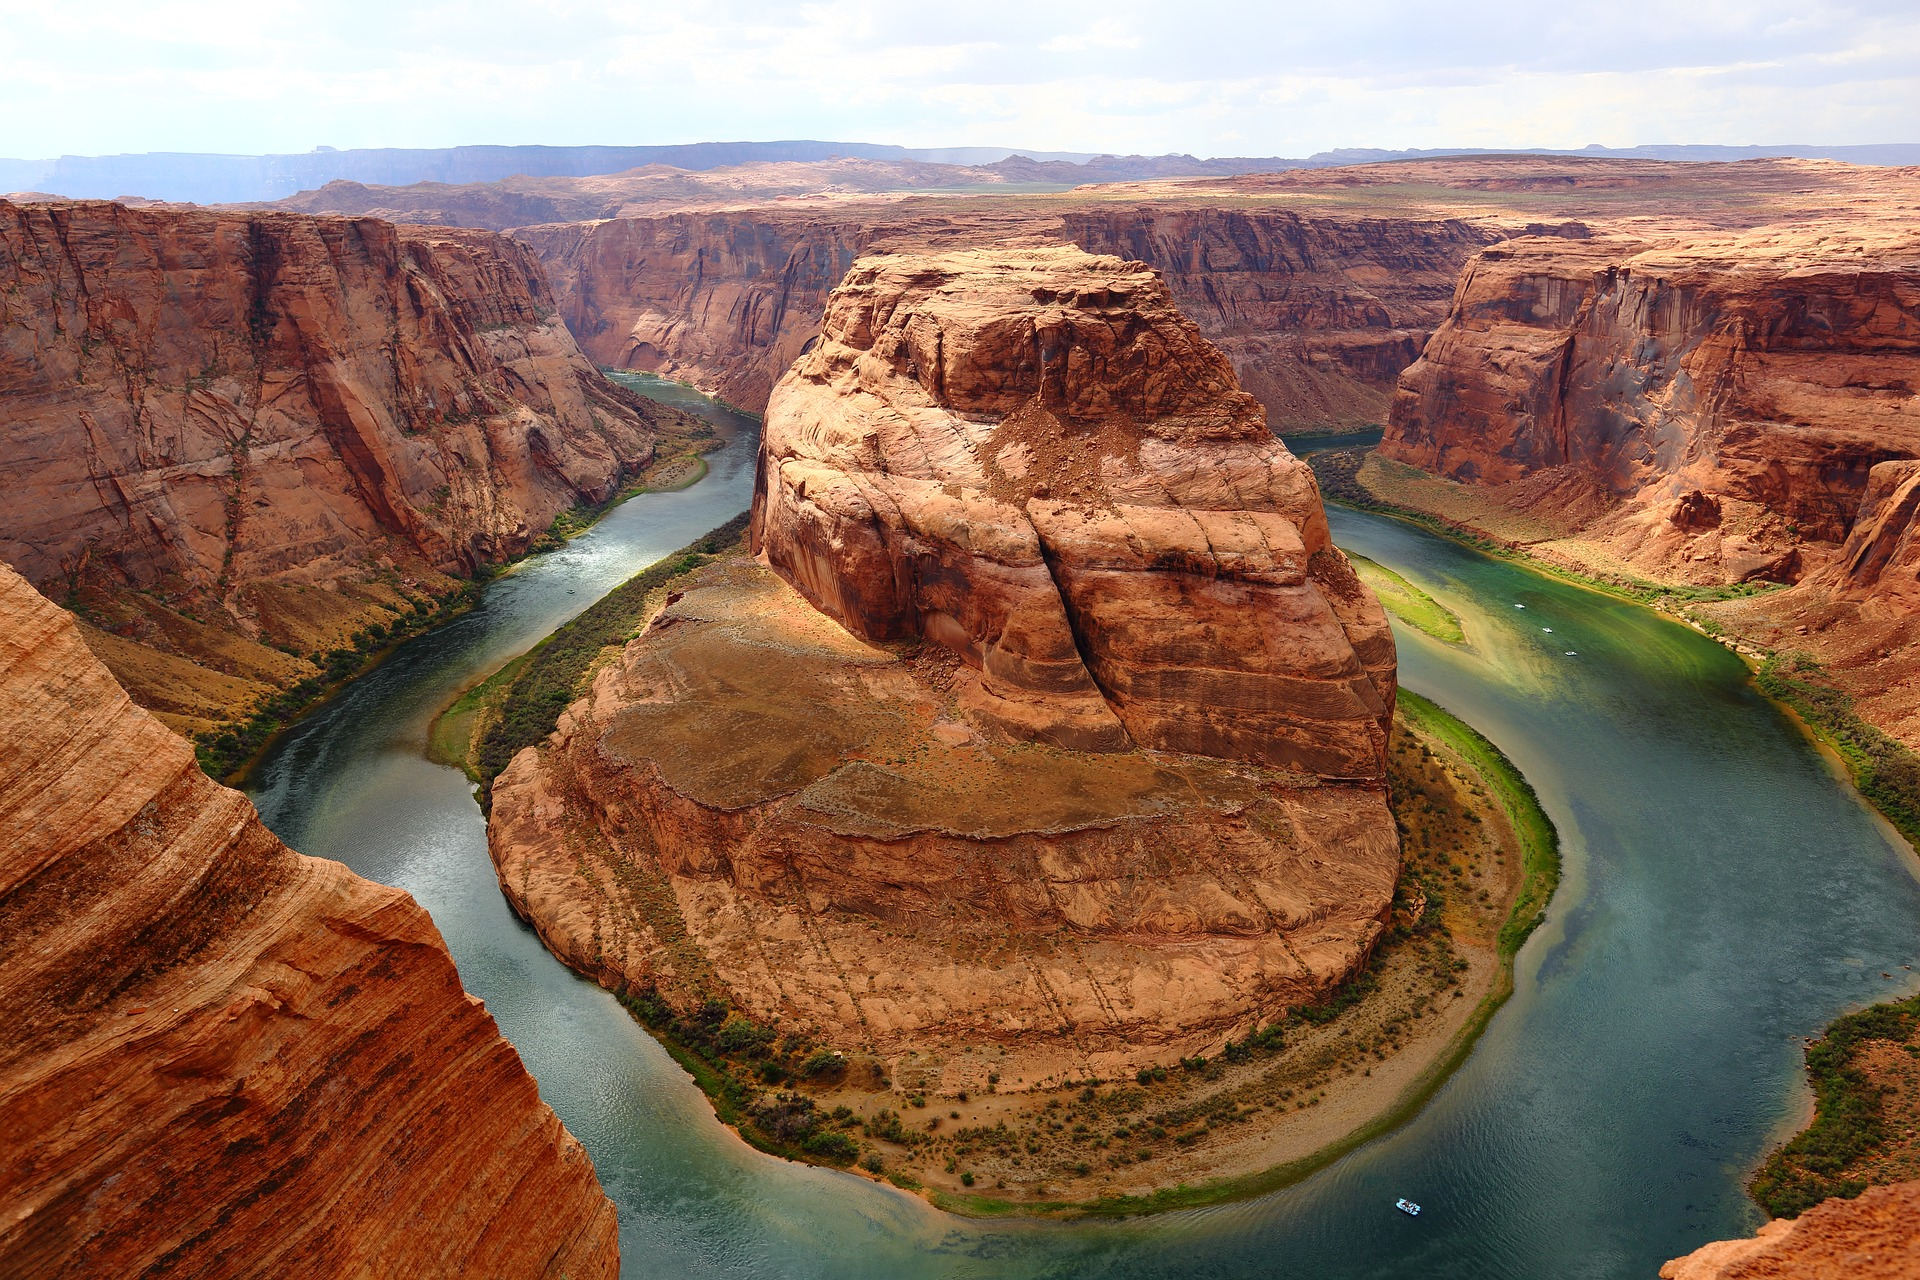 Grand_Canyon_CC0.jpg?1544194365